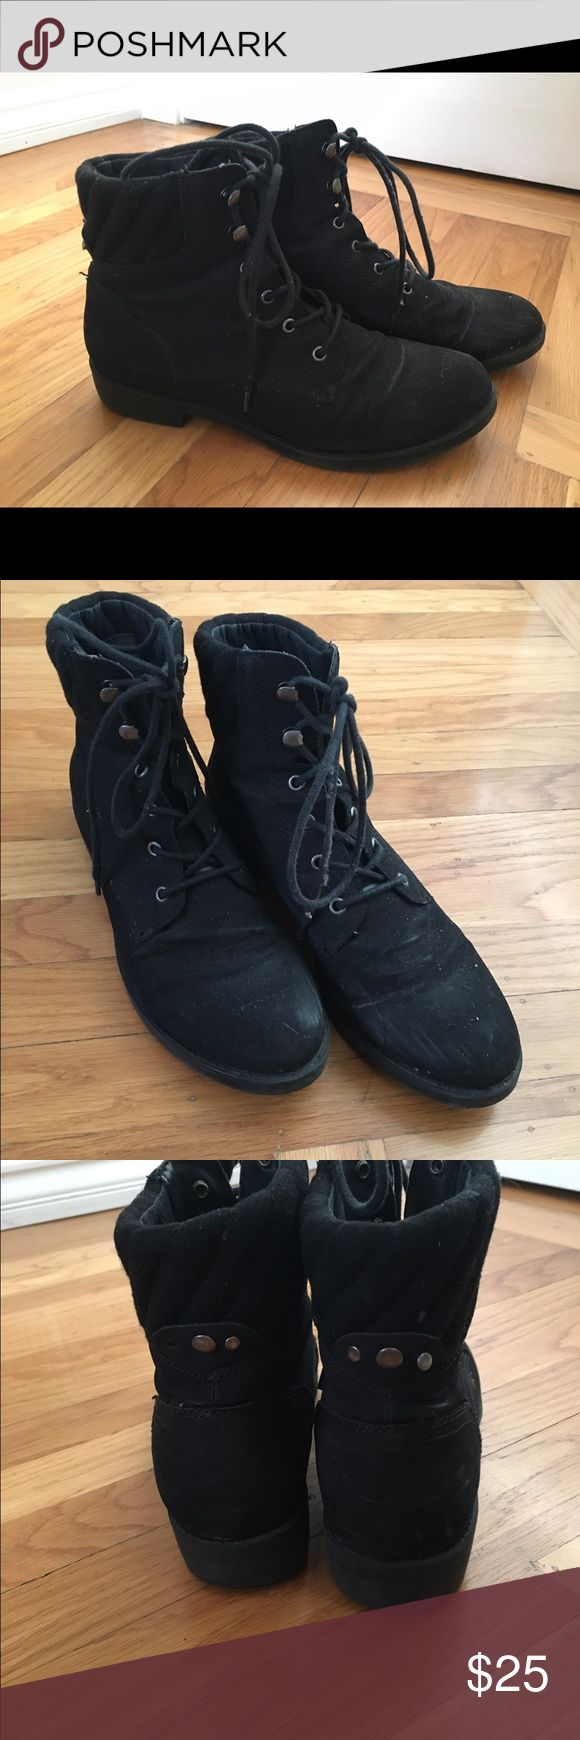 Black Women's ankle boots Used but a lot of wear left. They pair greatly with skinny jeans and leggings, good for people who walk through cities or hang out in the snow! Macy's Shoes Ankle Boots & Booties